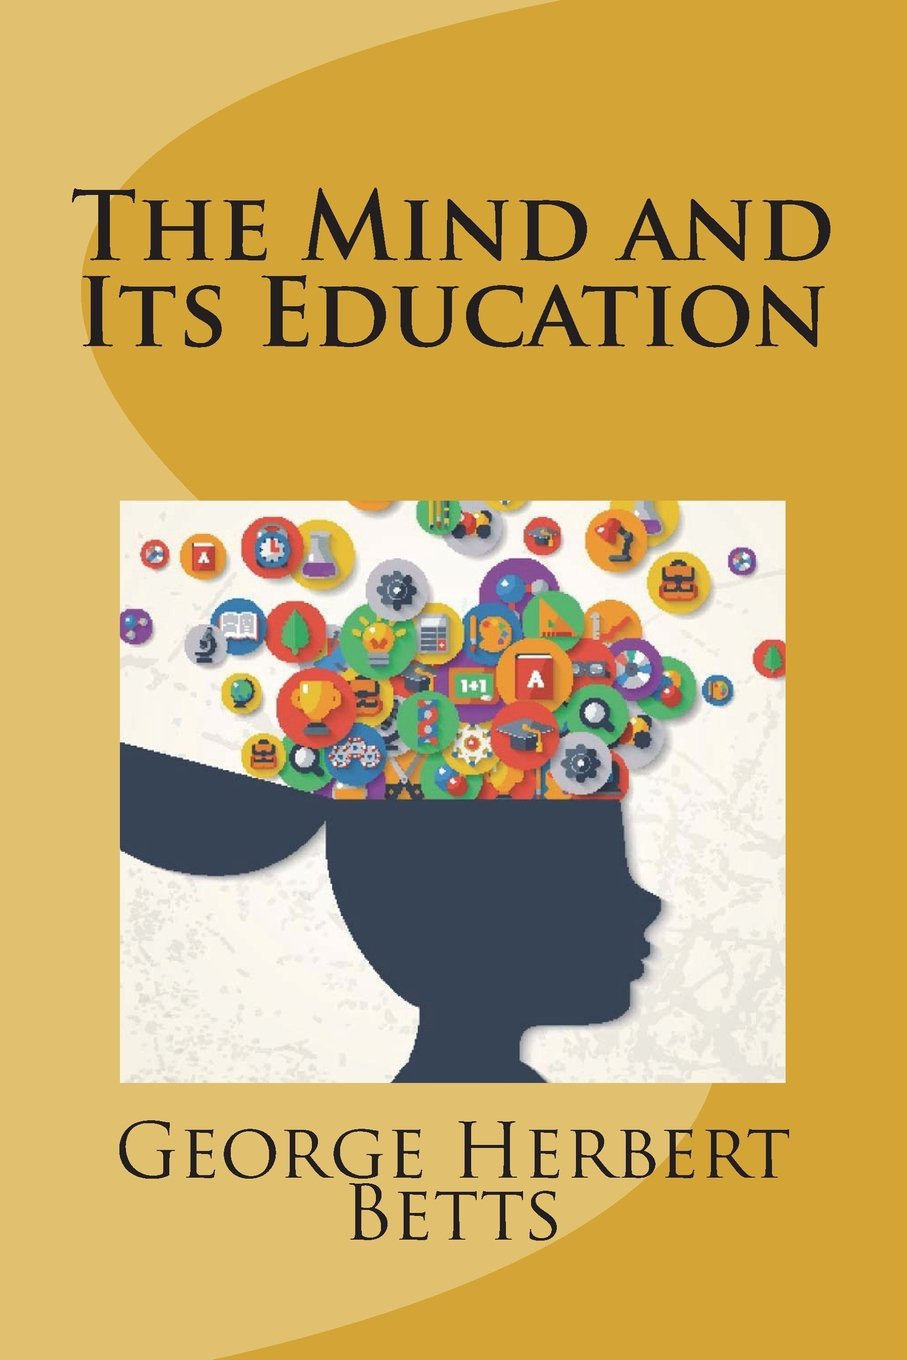 The Mind and Its Education: George Herbert Betts: 9781721925377:  Amazon.com: Books